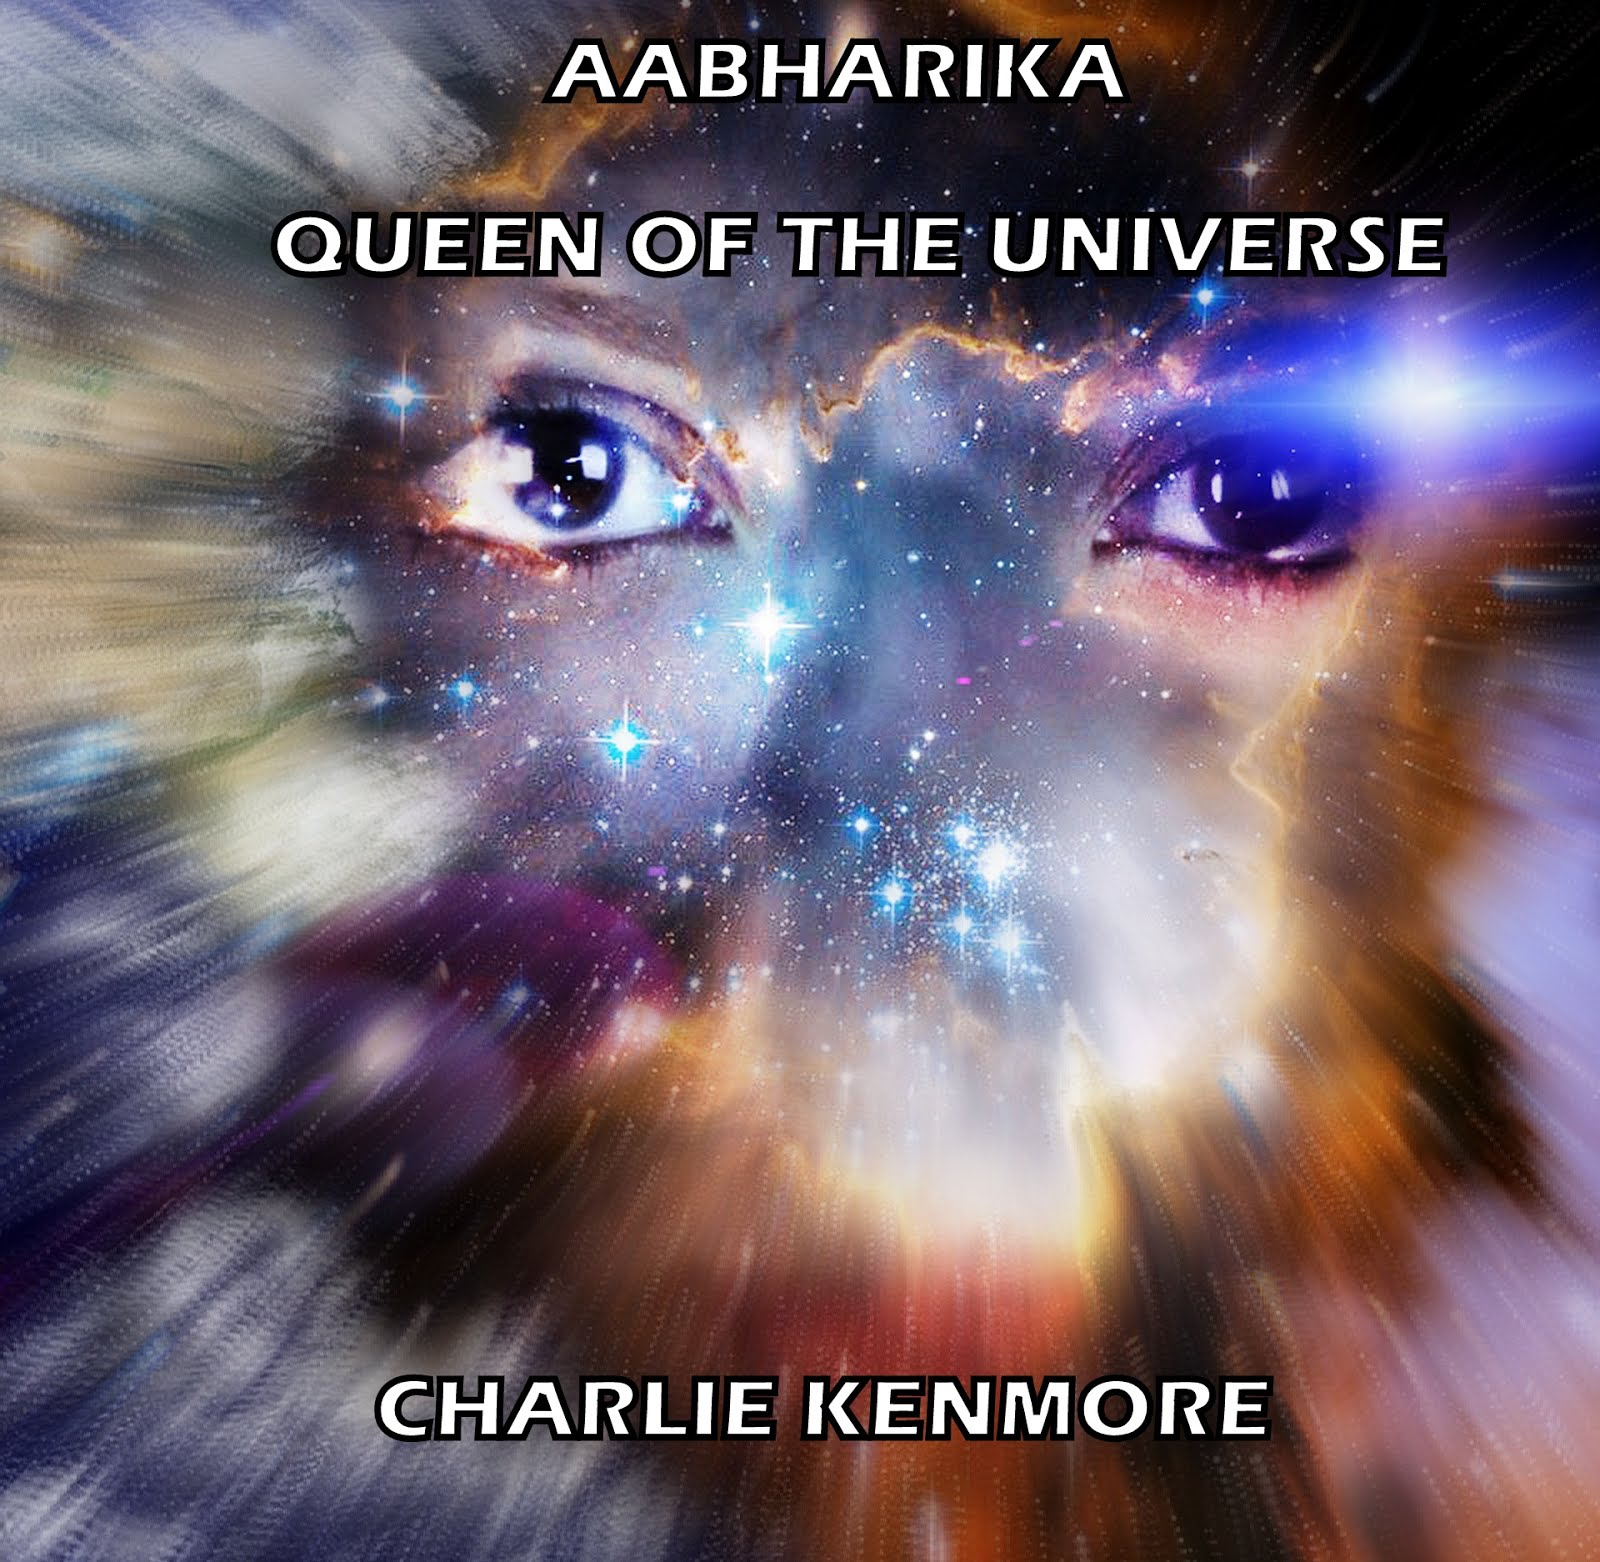 Aabharika Queen of the Universe